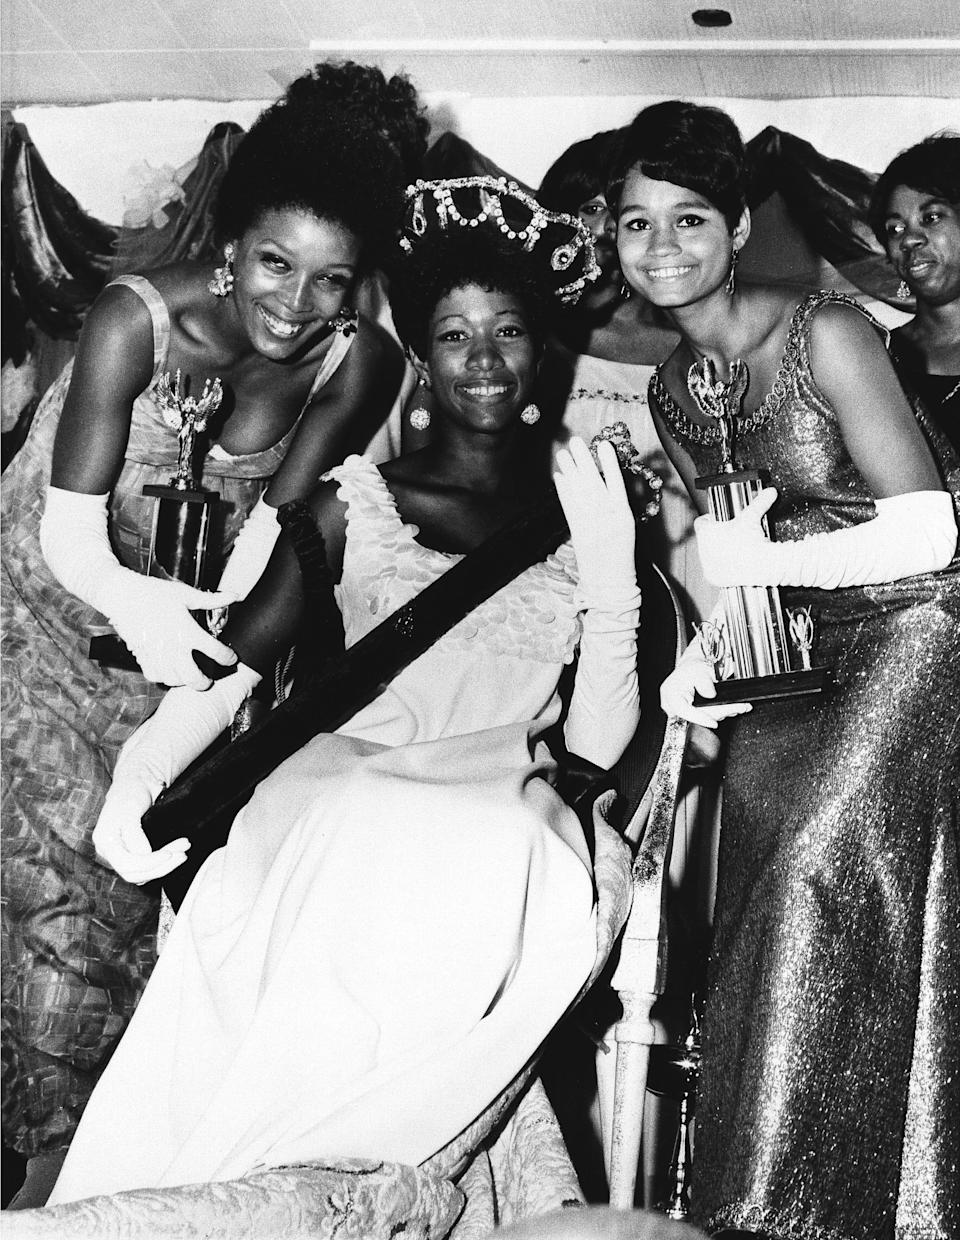 Saundra Williams, 19, center, of Philadelphia, Pa., was crowned Miss Black America 1969 at ceremonies in Atlantic City, Sept. 8, 1969. Linda Johnson, 21, left, also of Philadelphia, was chosen second runner-up, while Theresa Claytor, 20, right, of Washington, D.C. was first runner-up. Williams was crowned a little over 2 hours after Judith Ann Ford, of Belvedere, Ill., was chosen Miss America 1969 at Convention Hall.